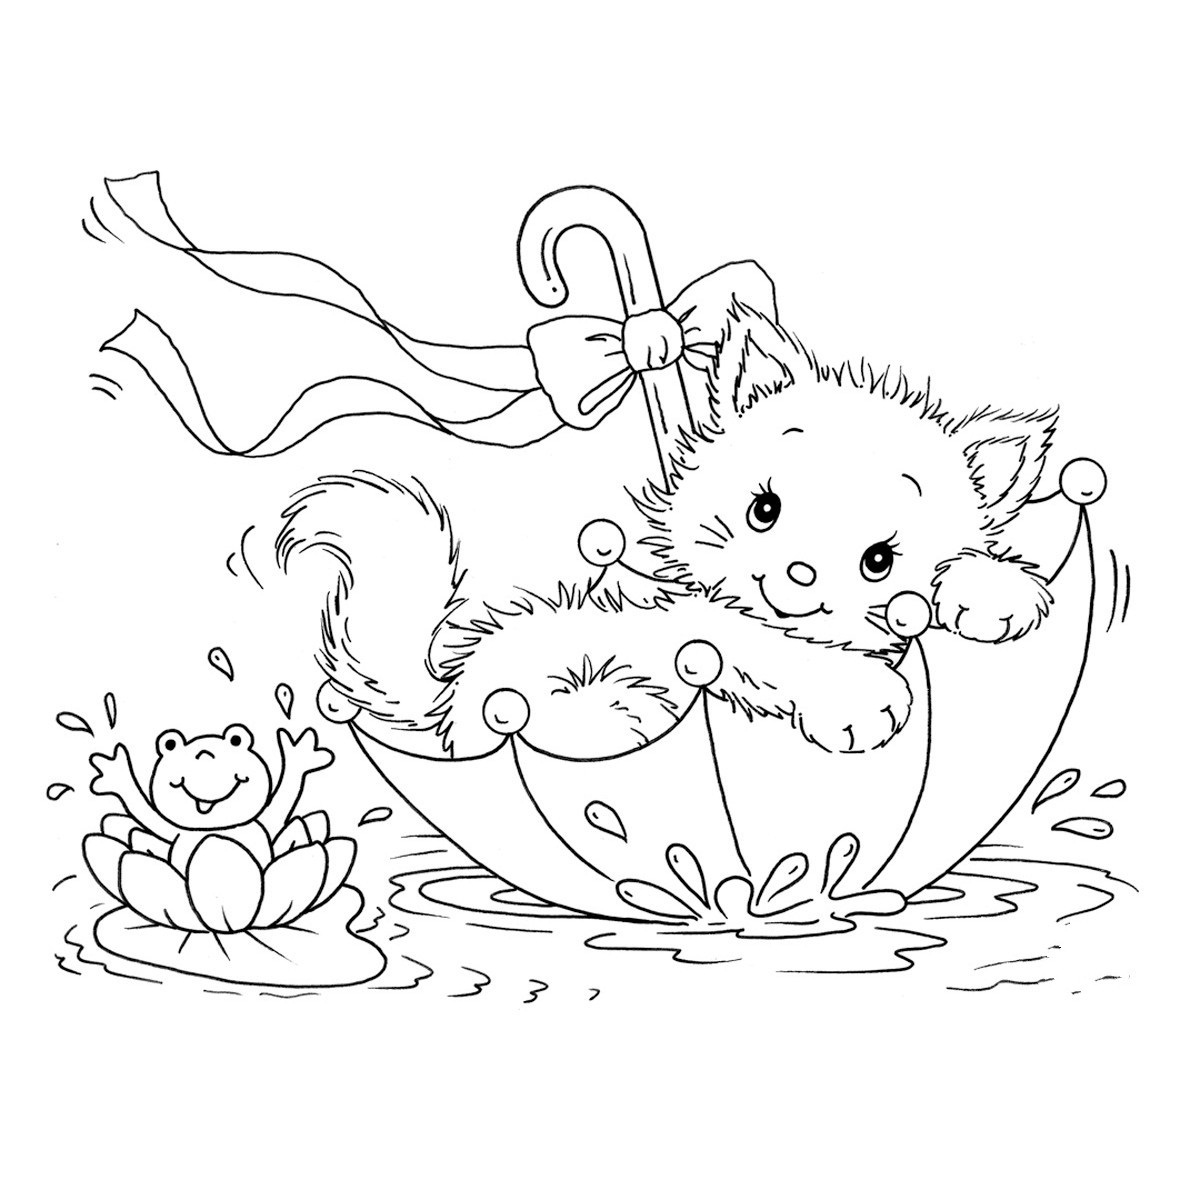 kittens coloring pages to print free printable cat coloring pages for kids to kittens pages coloring print